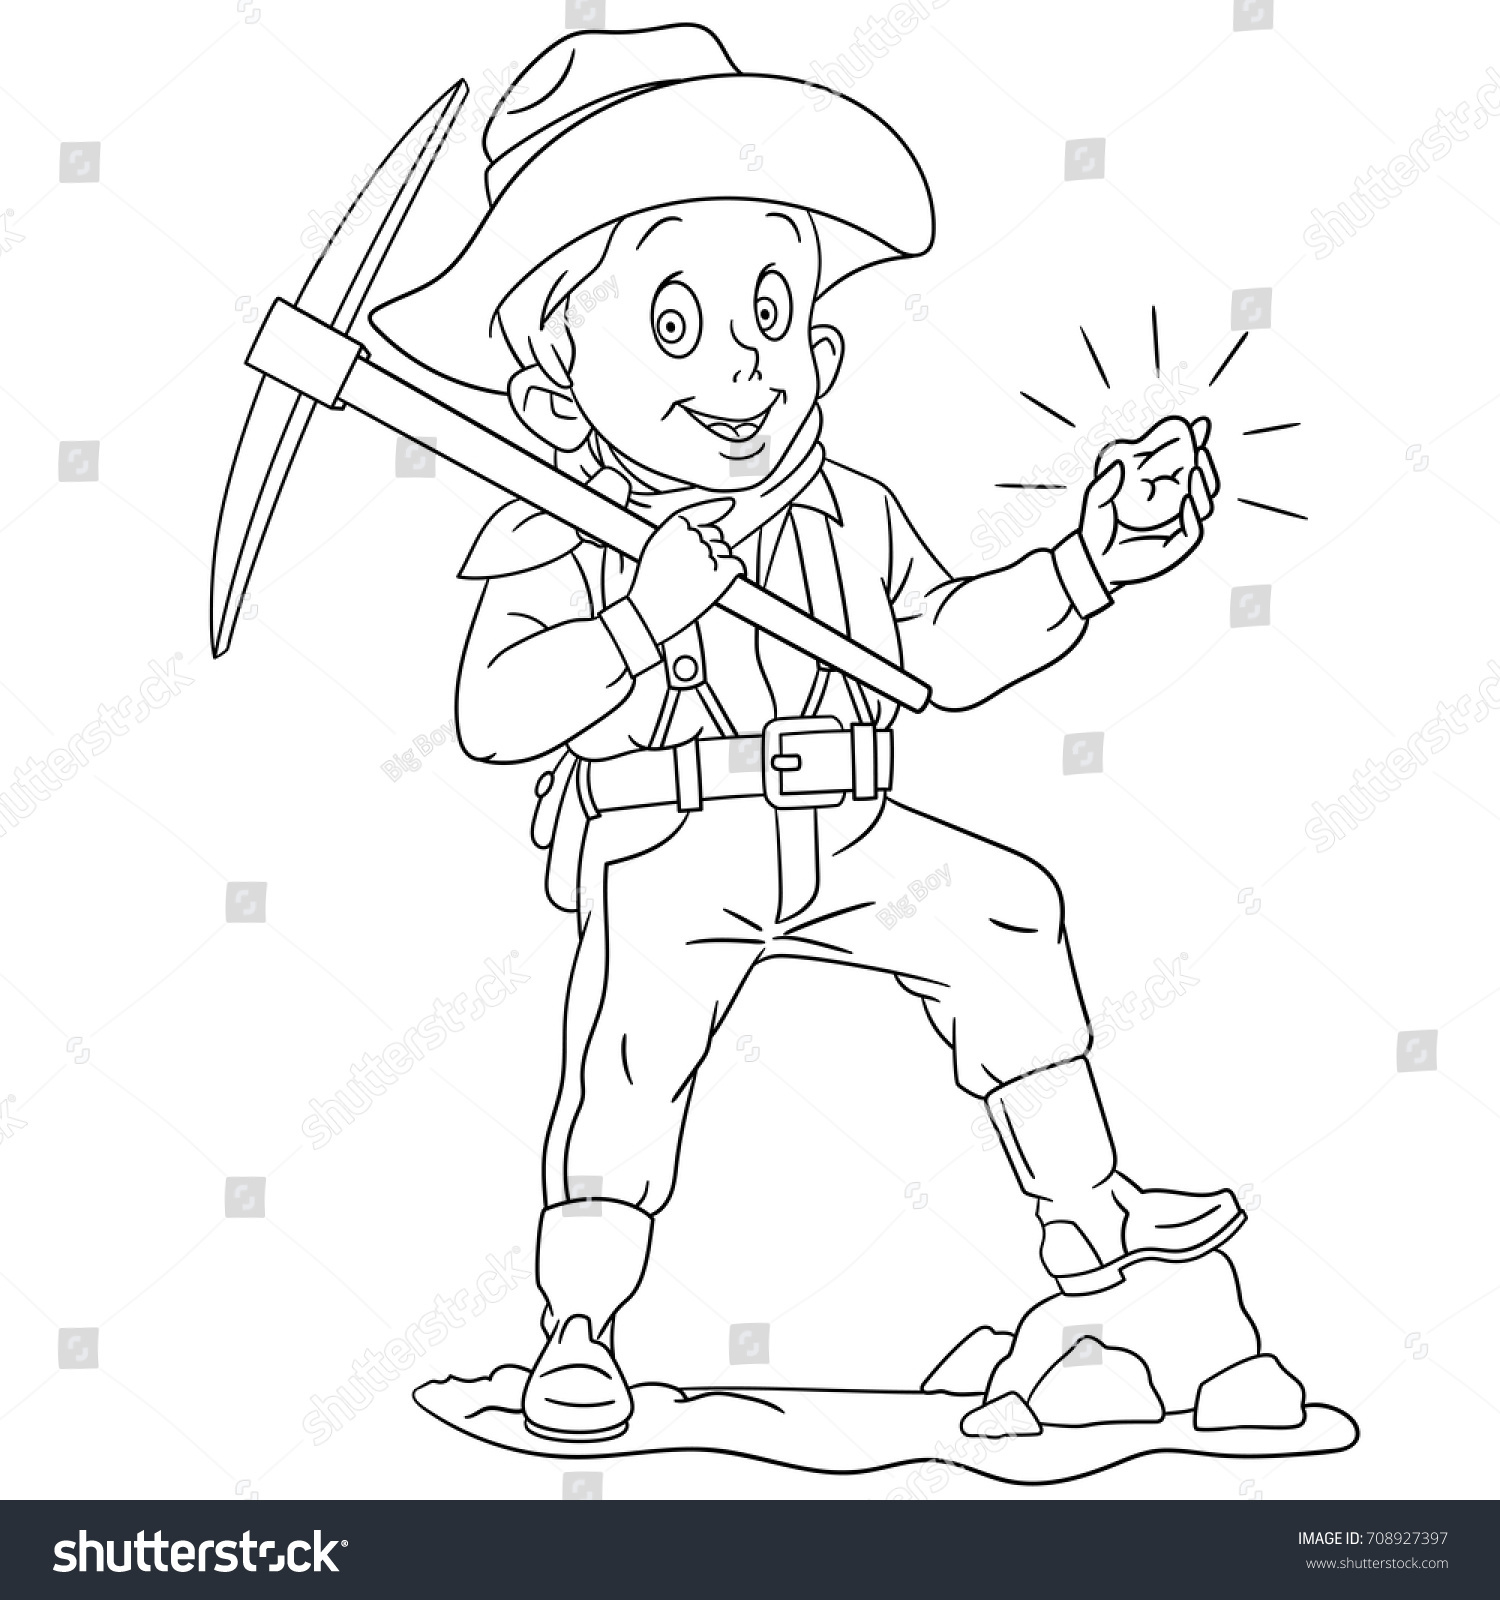 1500x1600 Tremendous Mining Coloring Pages